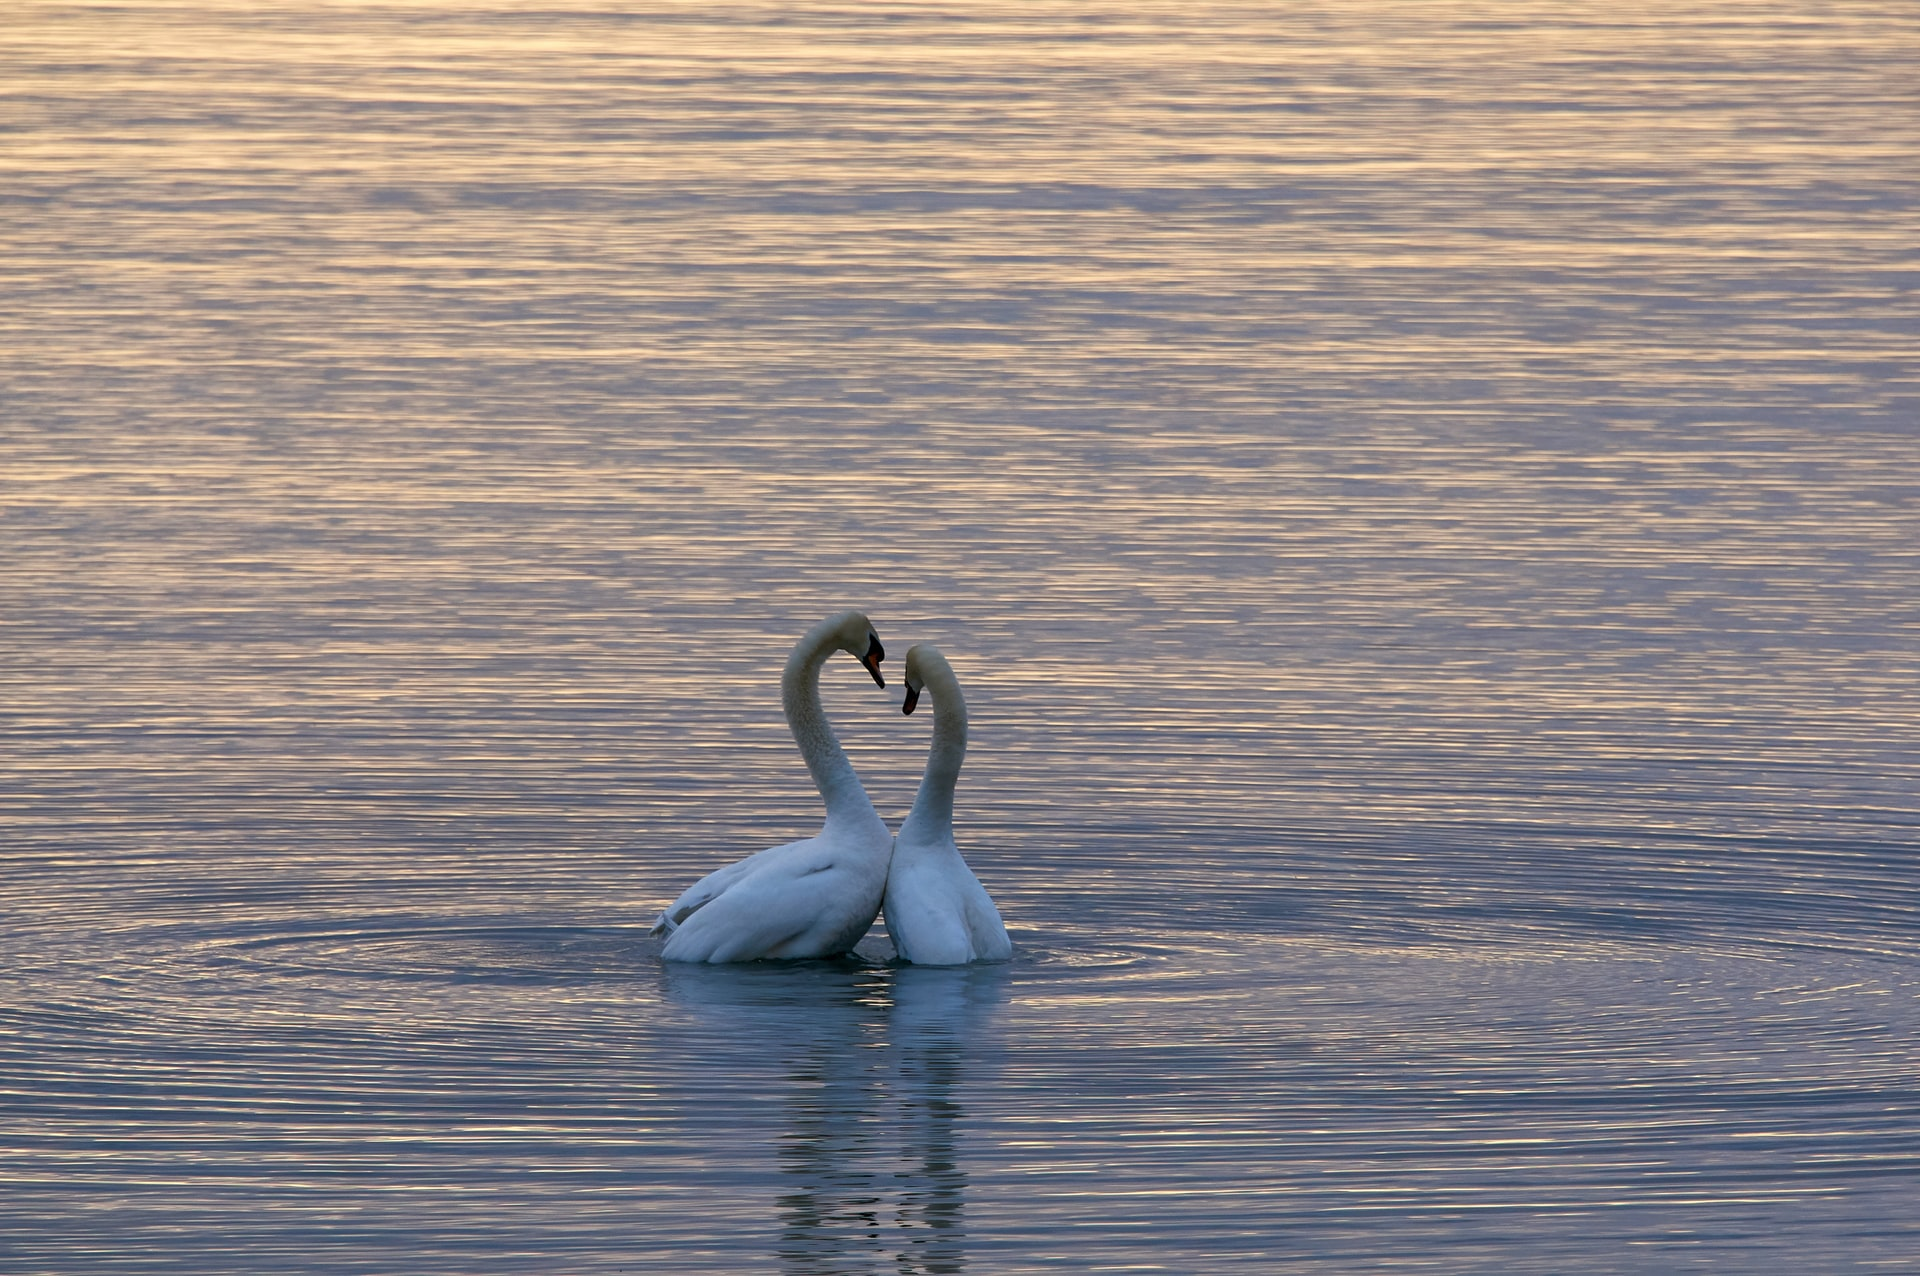 Two white swans in a body of water. Photo courtesy of Wolfgang Hasselmann on Unsplash.